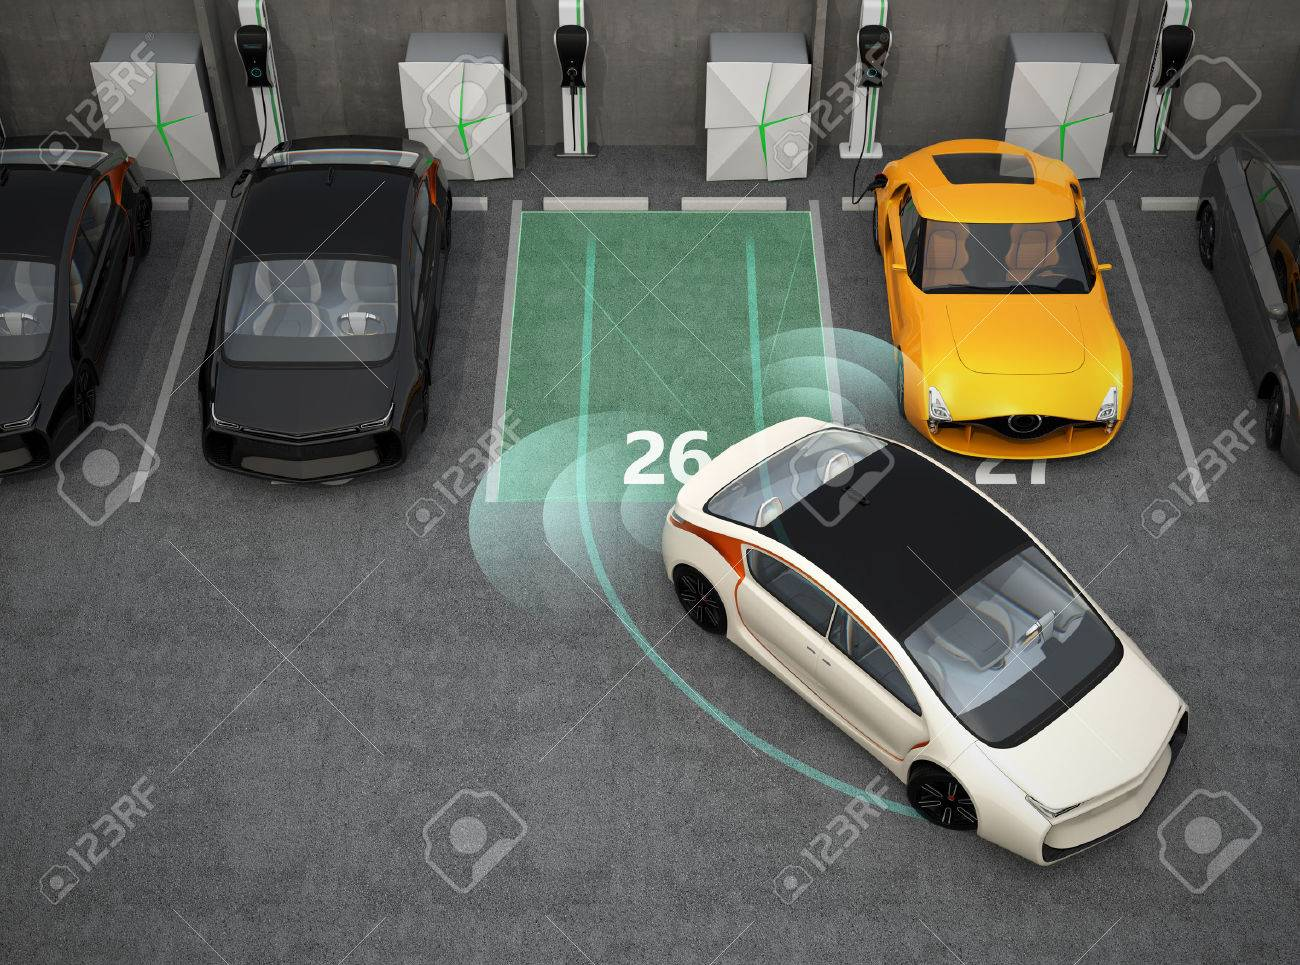 White electric car driving into parking lot with parking assist system. 3D rendering image. - 58897786